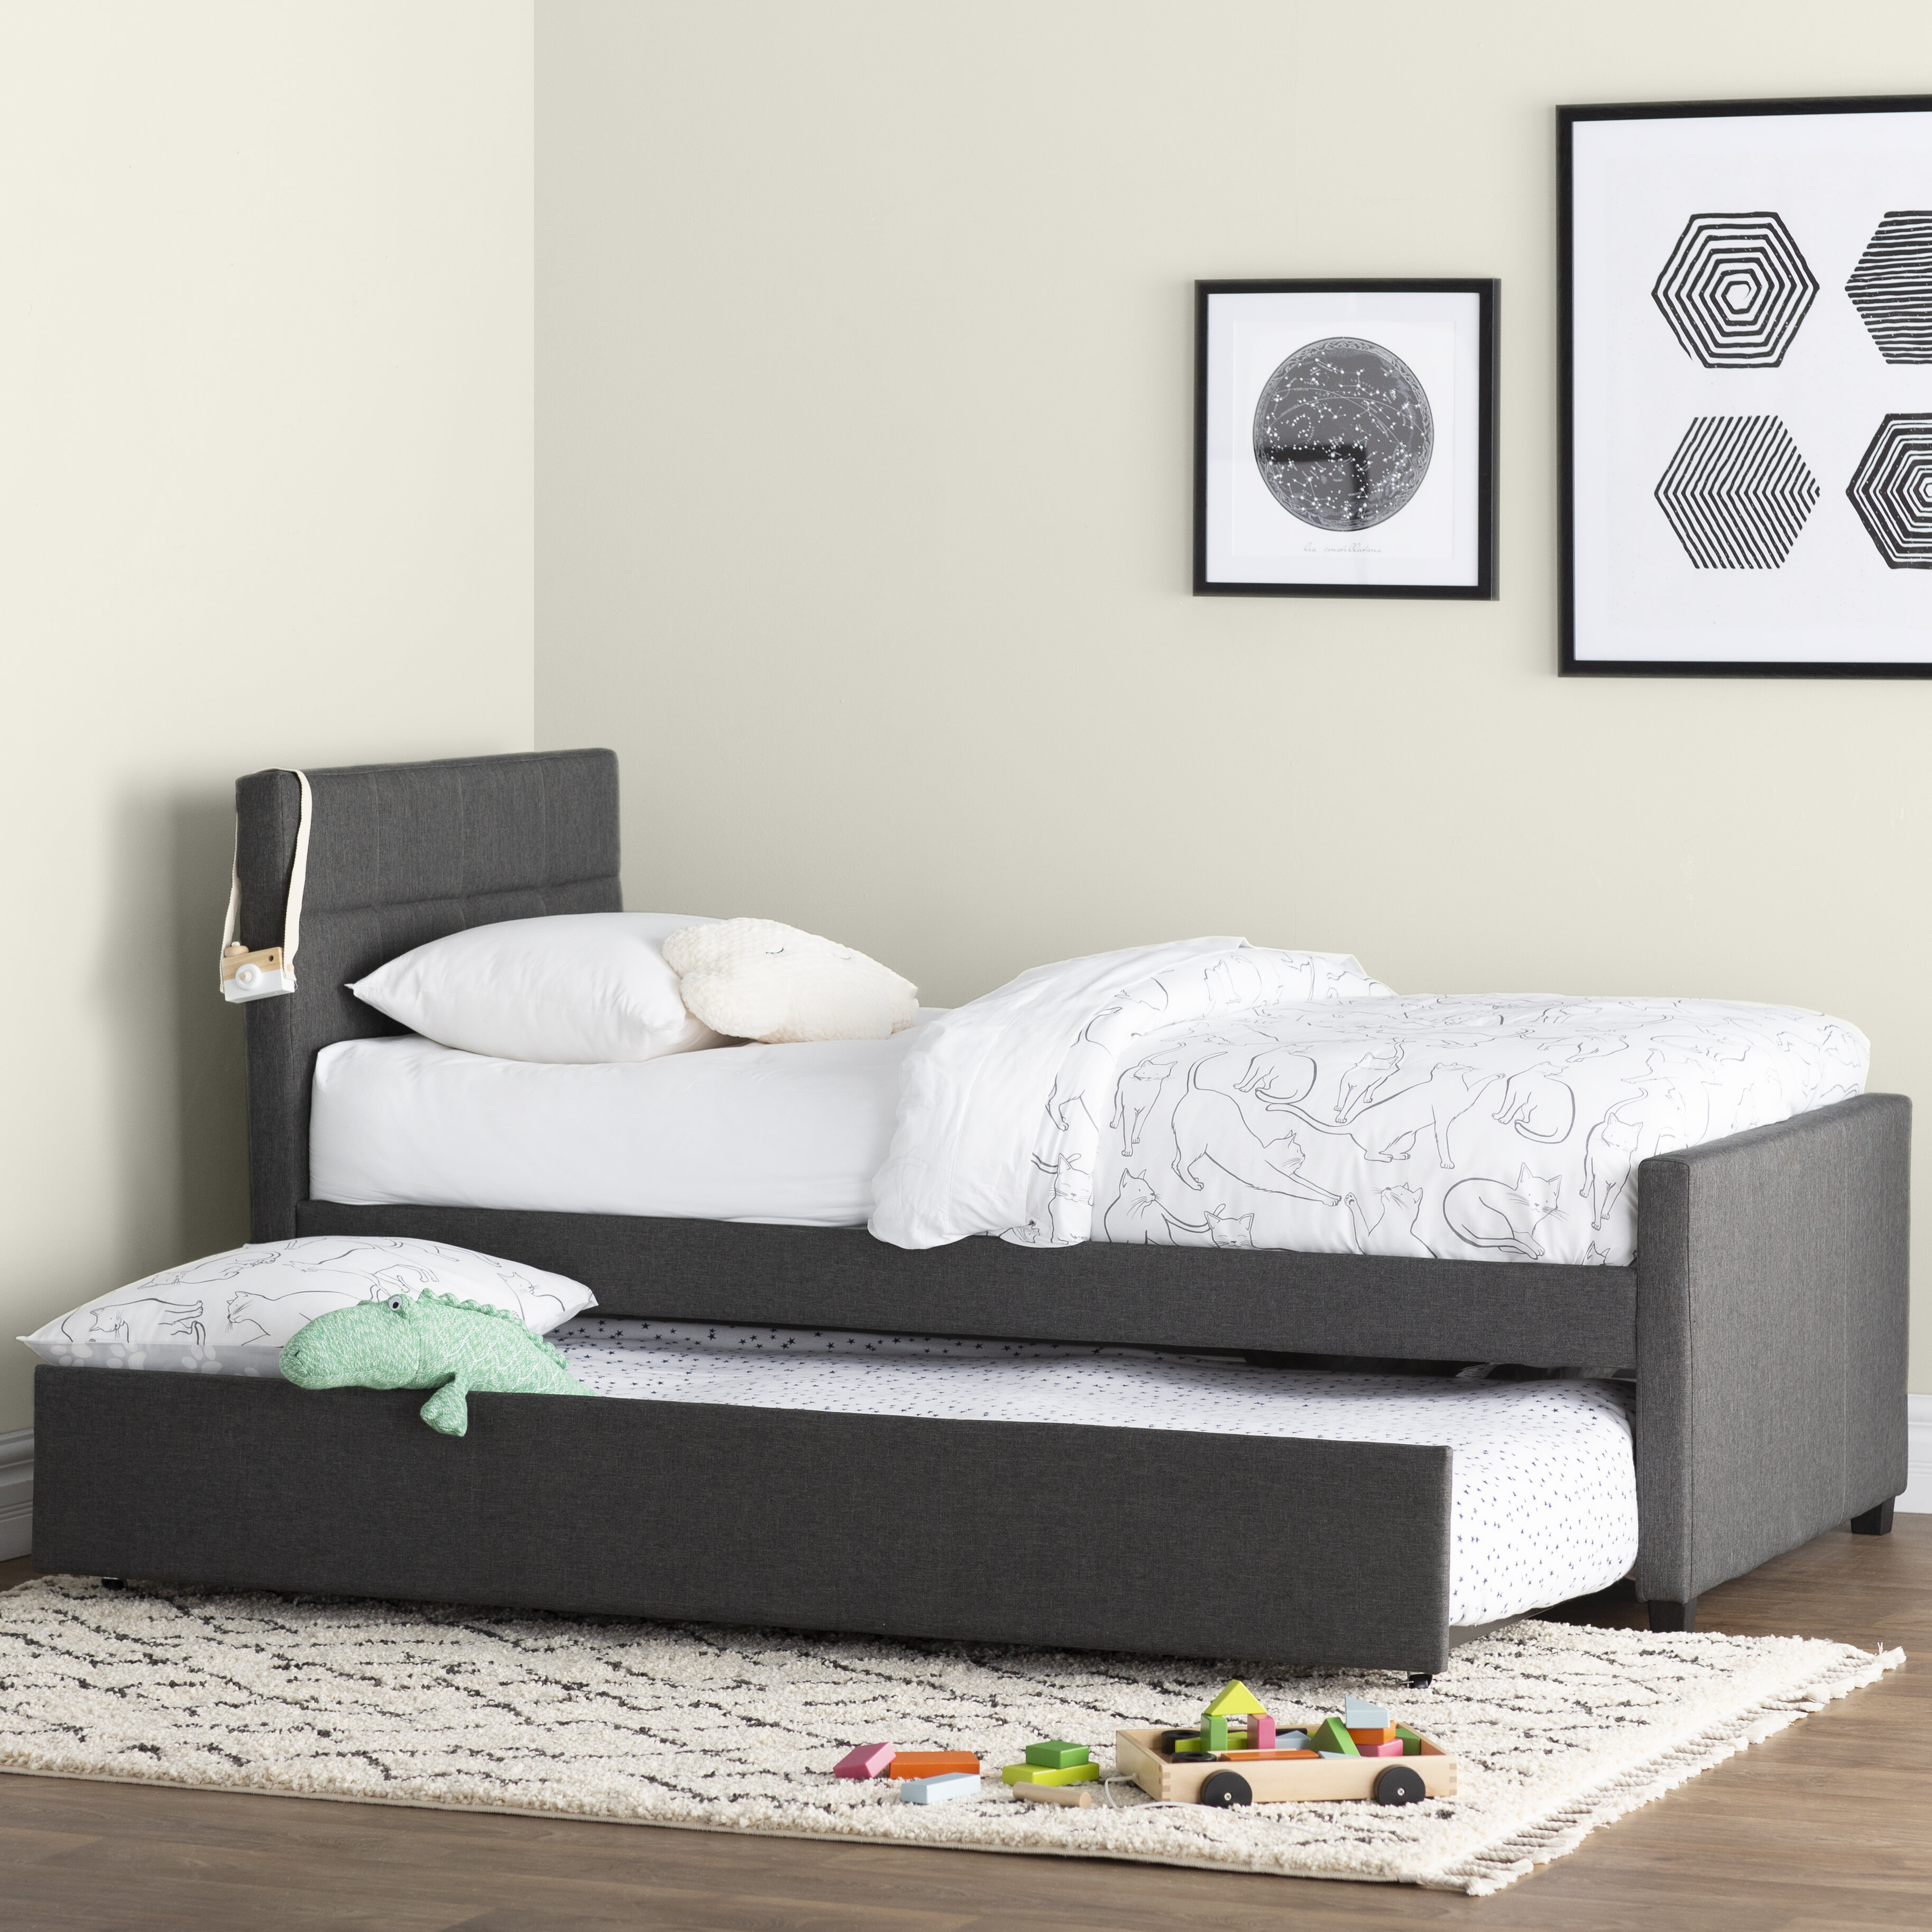 Kids Trundle Beds You'll Love in 2021 | Wayfair